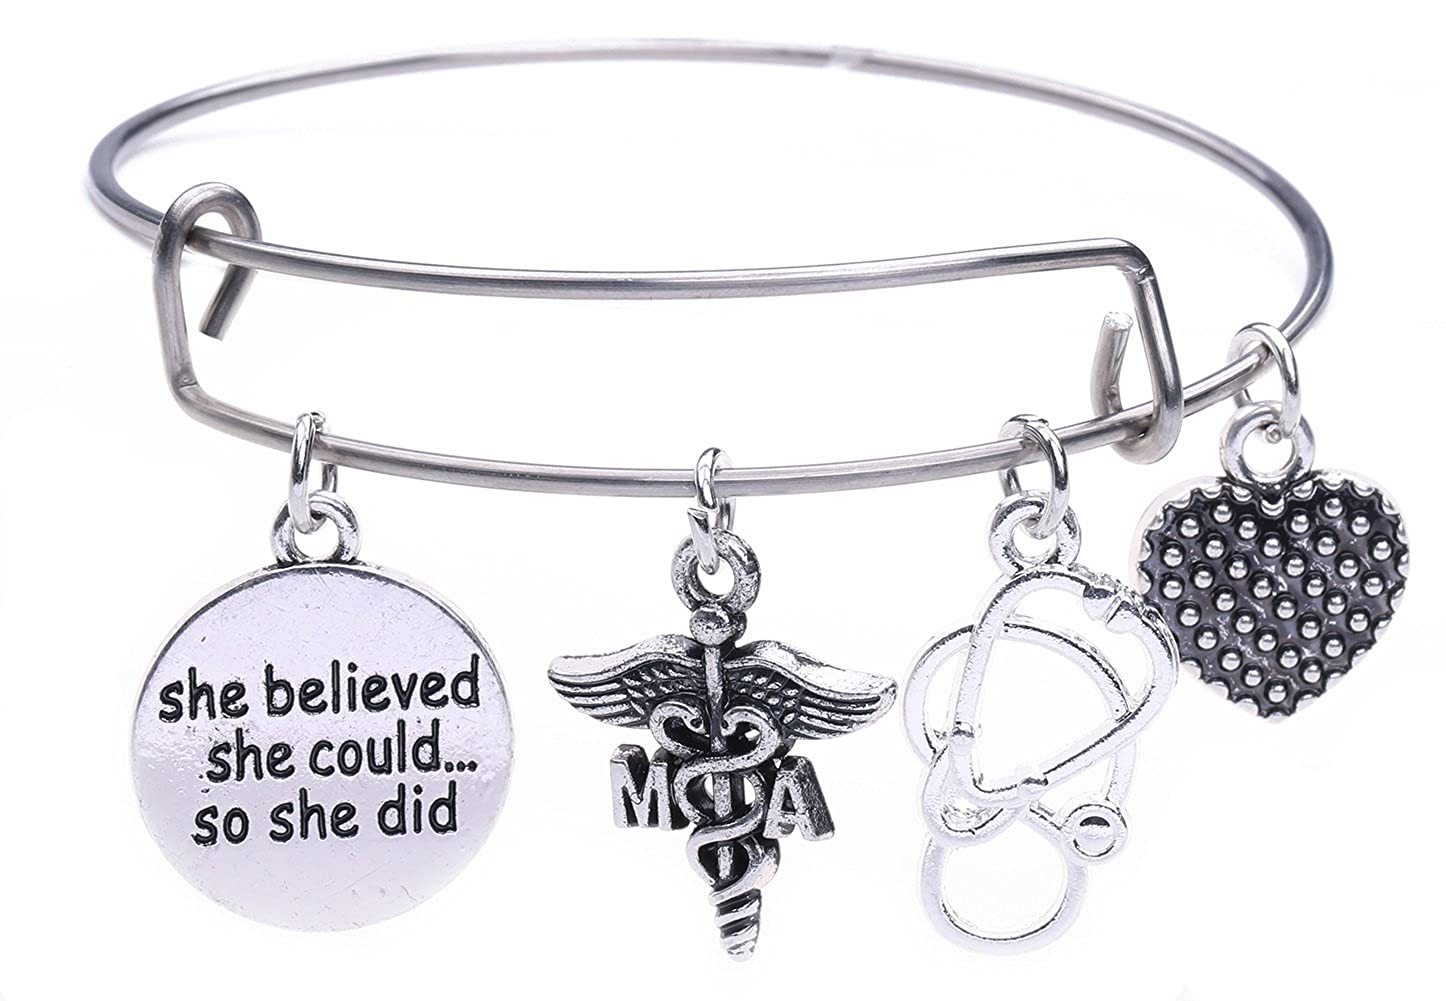 Dawapara Medical Assistant MA Caduceus Charm Stainless Steel Bracelet Bangle Medical Jewelry for Graduation Gift